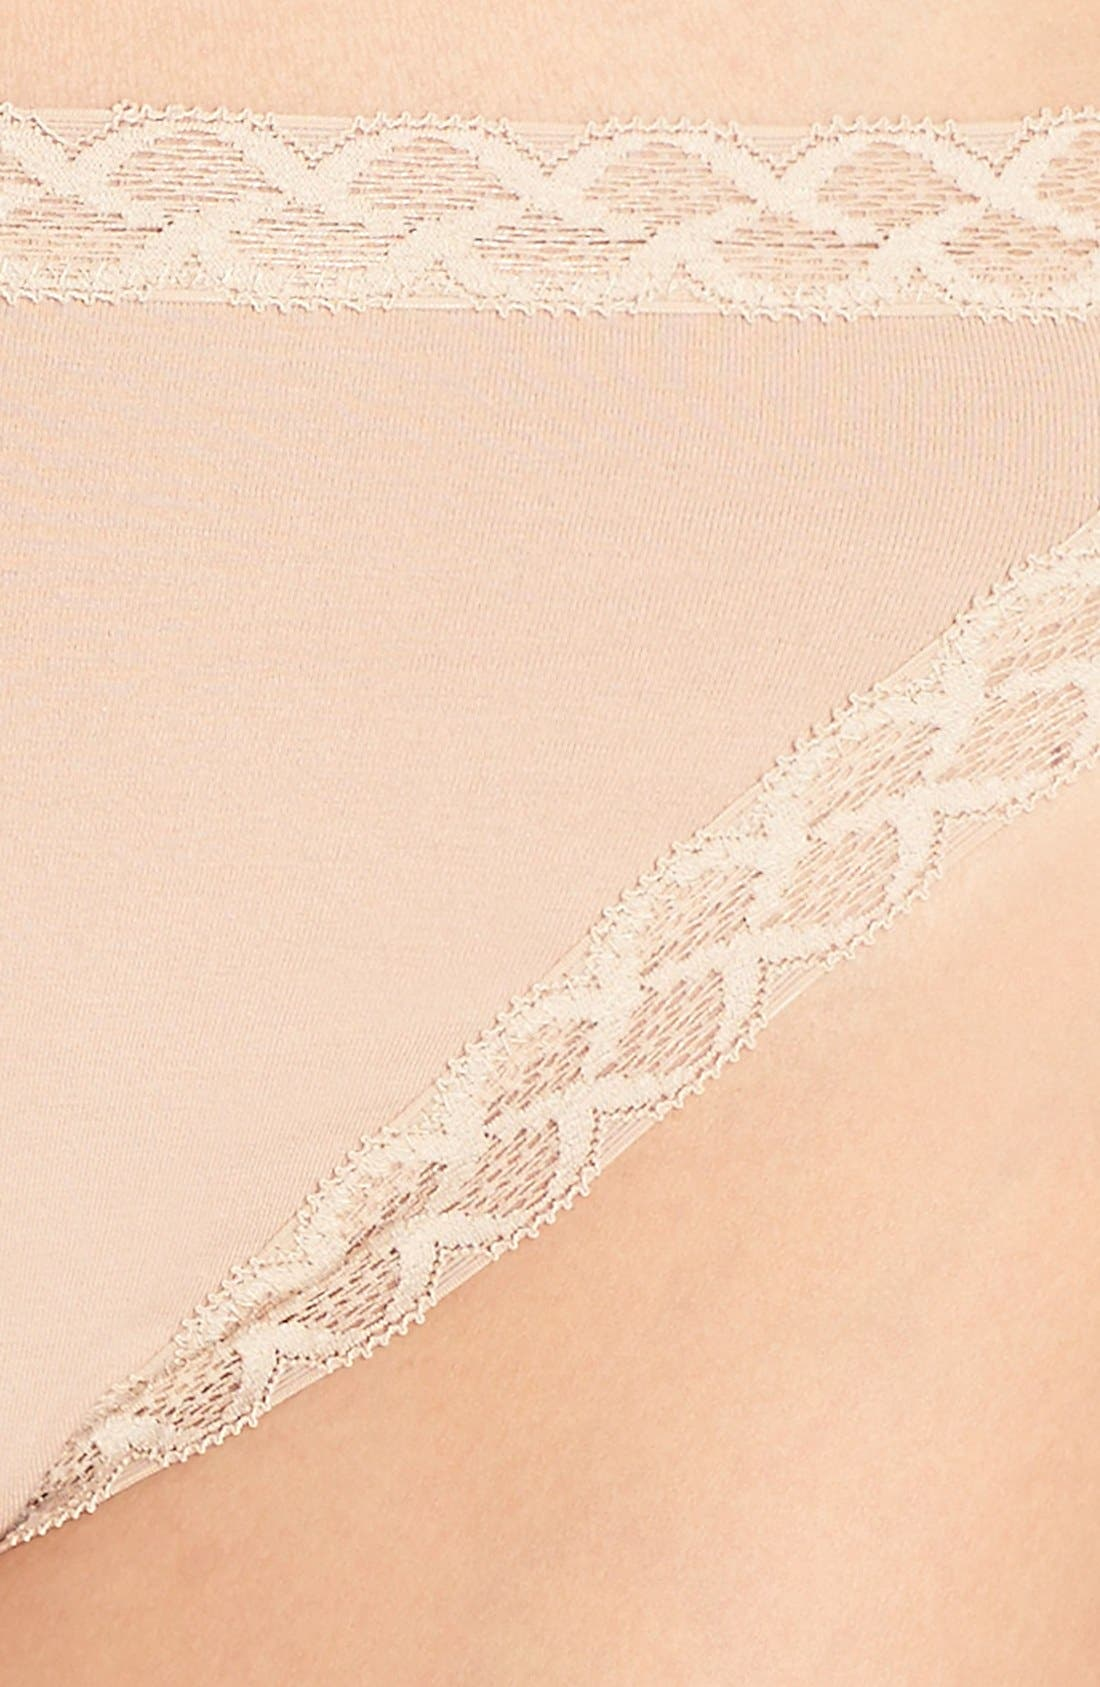 Bliss French Cut Briefs,                             Alternate thumbnail 4, color,                             Cafe